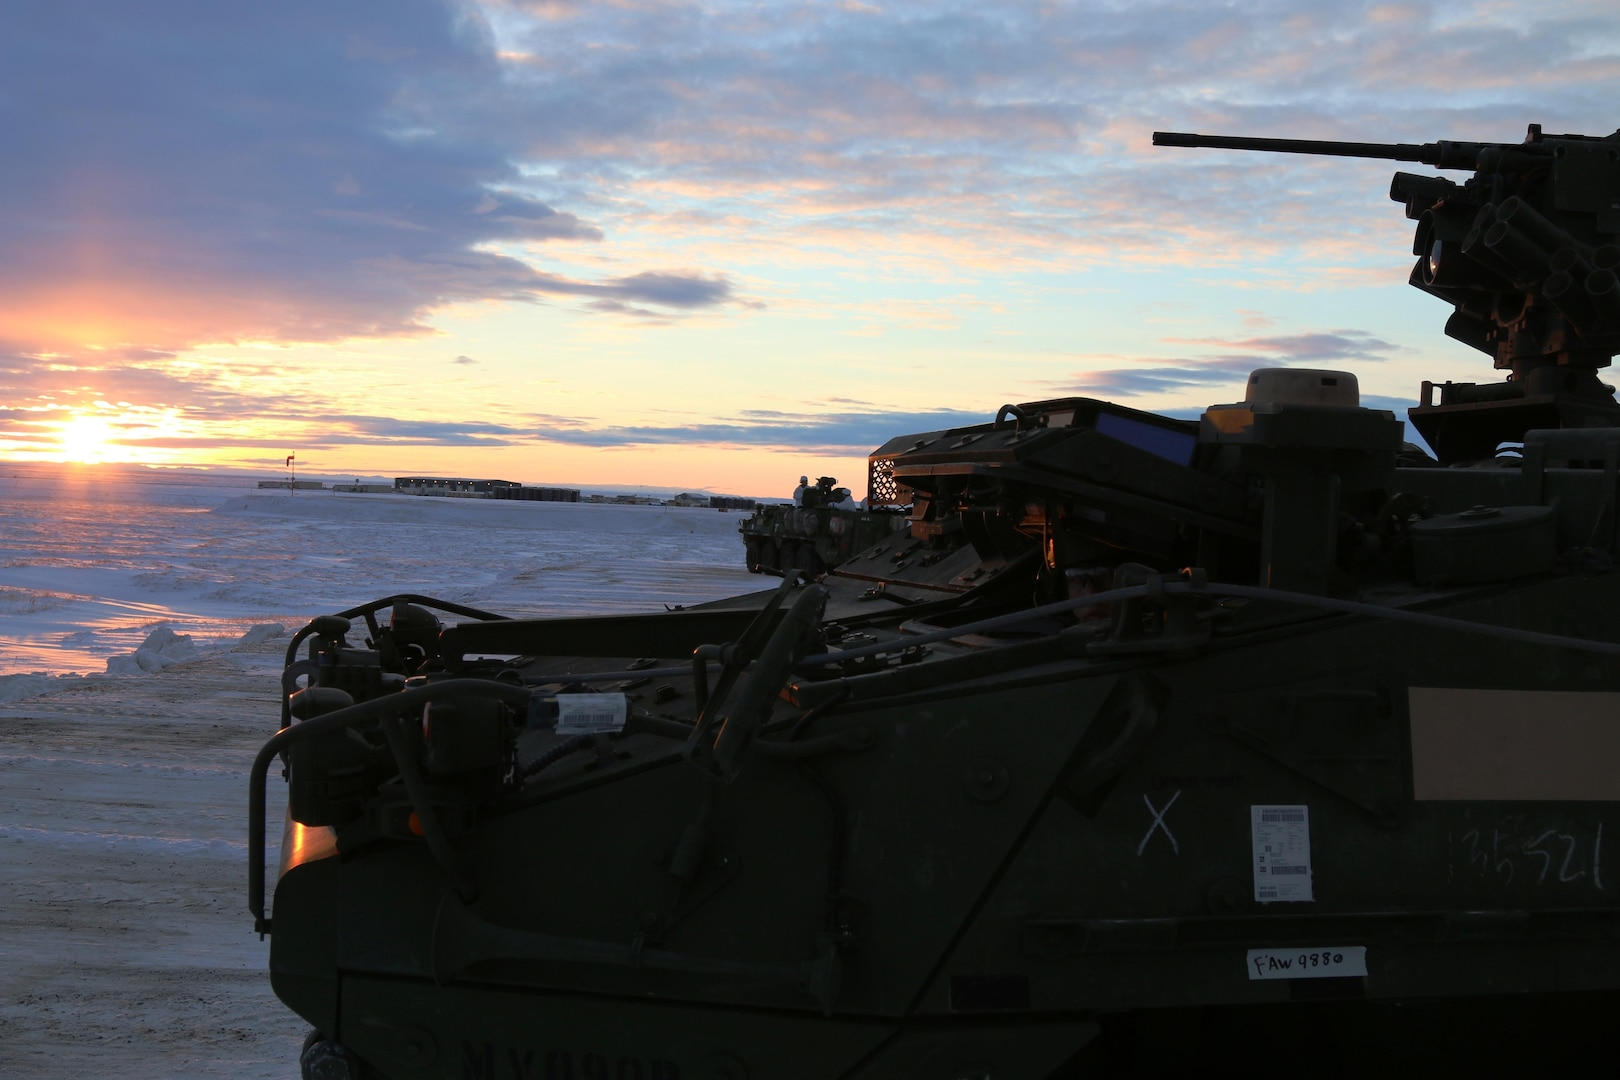 U.S. Army Alaska Soldiers from Bravo Company, 3-21 Infantry Regiment, 1st Stryker Brigade patrolling the Arctic tundra surrounding Deadhorse, Alaska, during Operation Arctic Pegasus, Nov. 4, 2015. Arctic Pegasus is U.S. Army Alaska's annual joint exercise designed to test rapid-deployment and readiness in the Arctic. The exercise marks the first time Strykers have deployed above the Arctic Circle. 1st Stryker Brigade Combat Team is the Army's northernmost unit and has the unique capability to deploy and operate in extreme cold regions. (Photo by Capt. Richard Packer, U.S. Army Alaska Public Affairs)